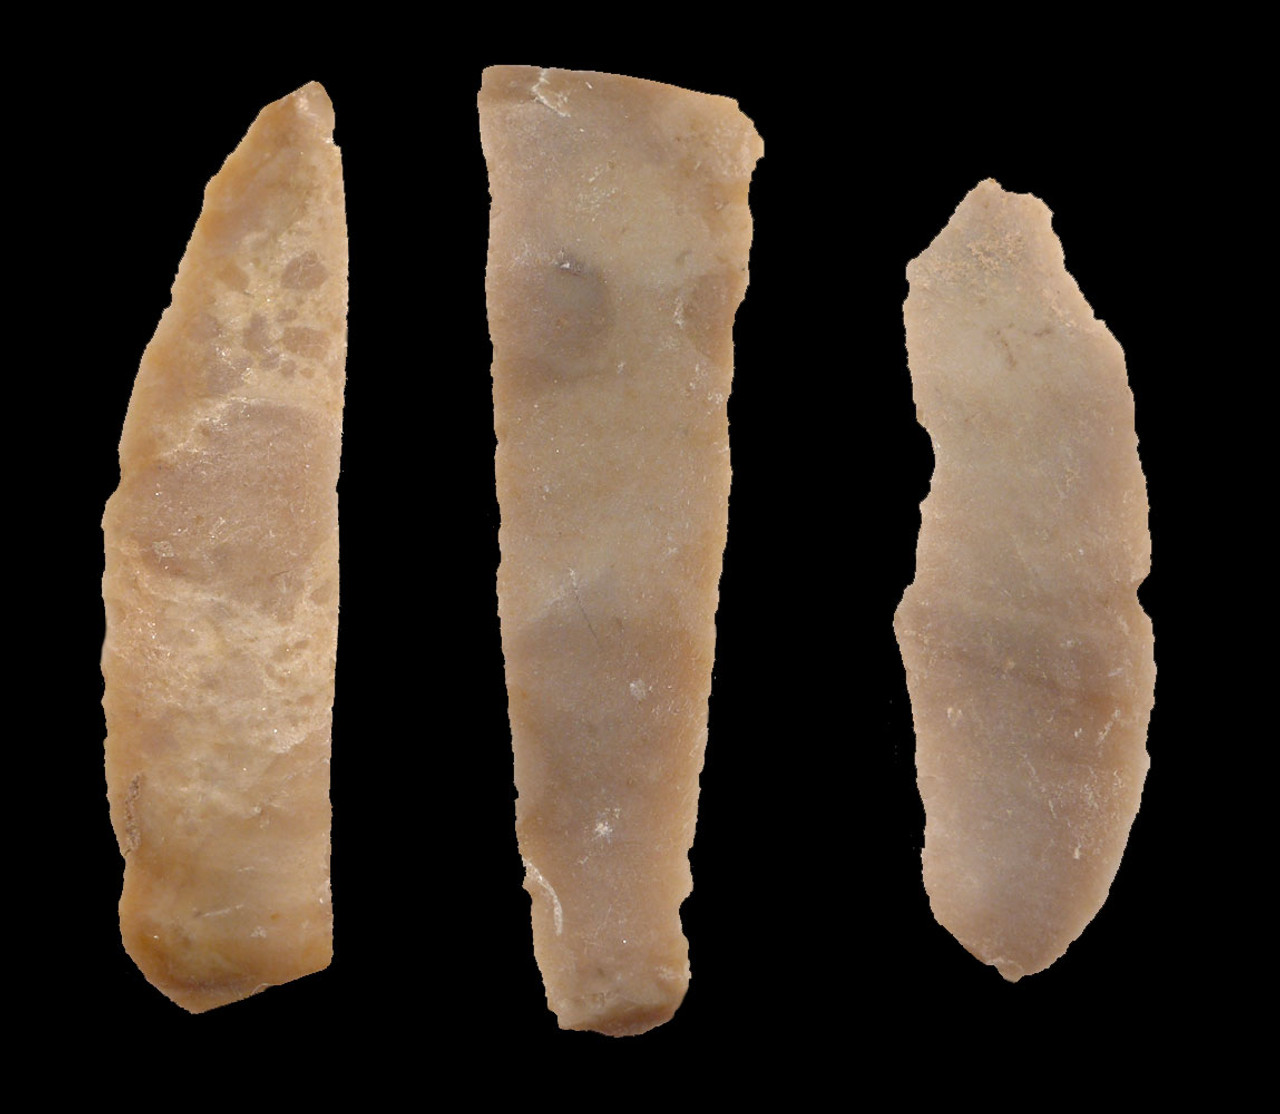 THREE RARE FLINT MIDDLE EAST NEOLITHIC KNIFE BLADES FROM THE CRADLE OF CIVILIZATION IN JORDAN  *N186